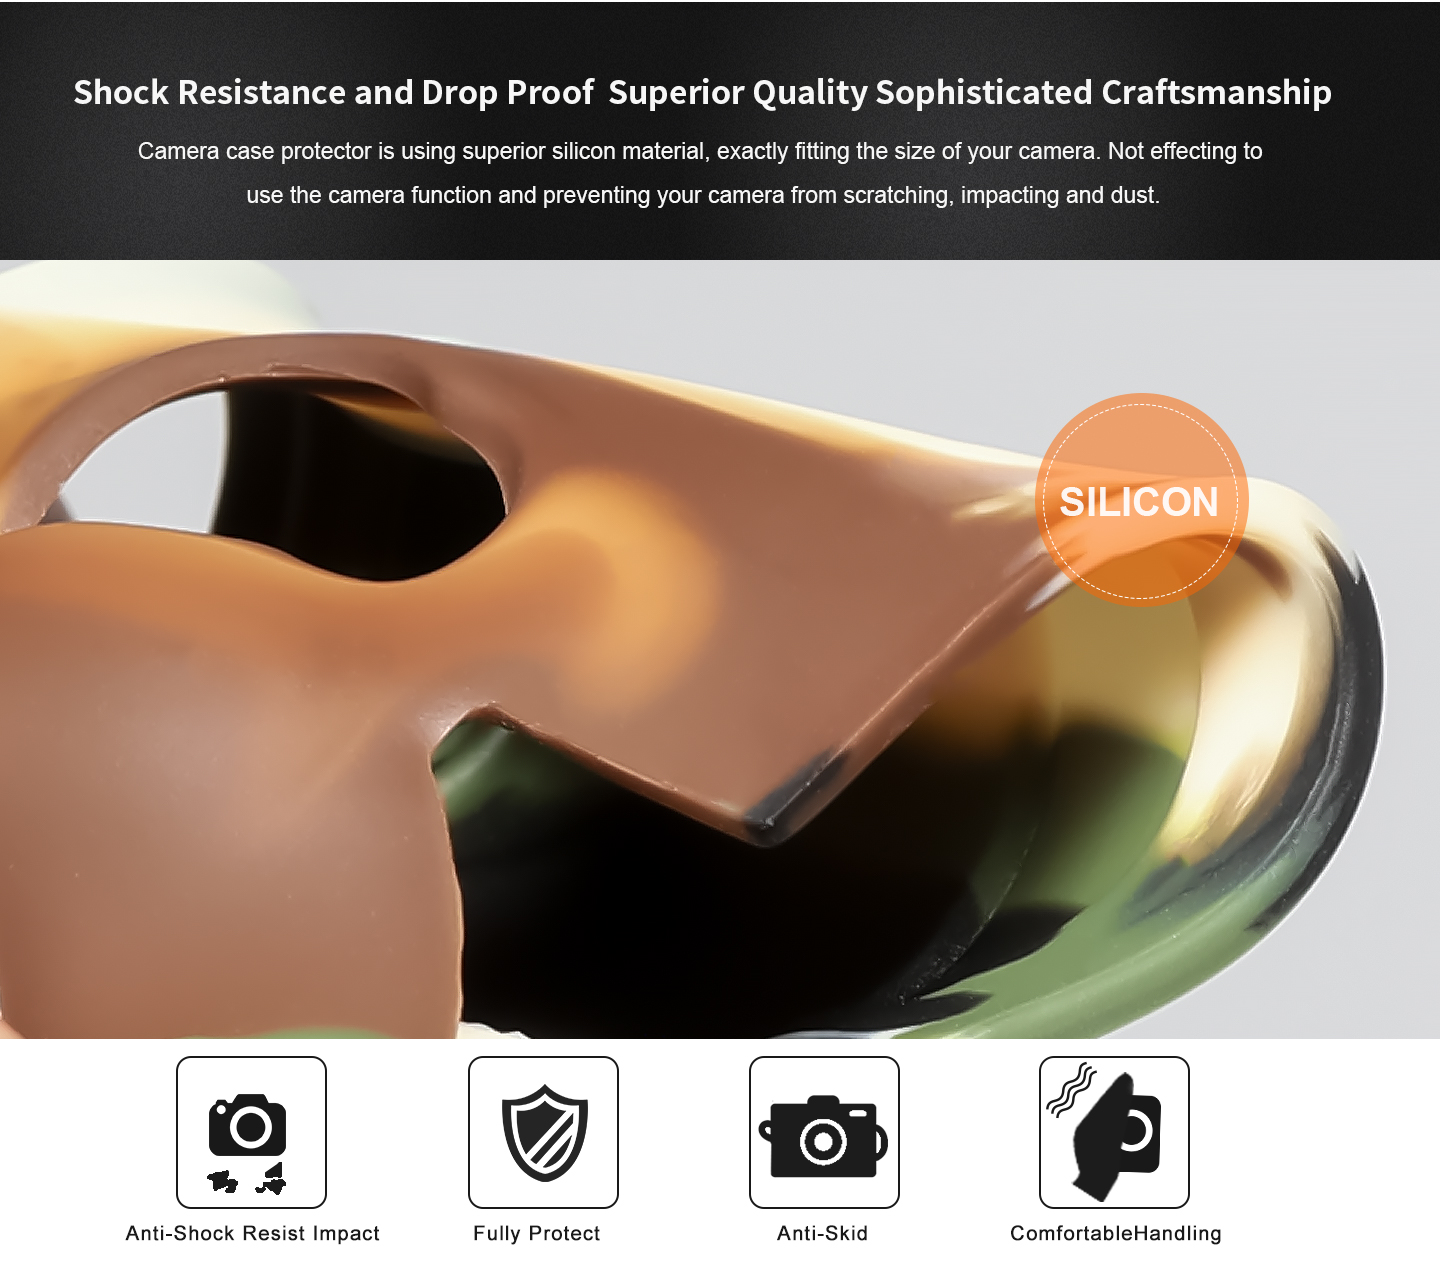 Shock Resistance and Drop Proof Superior Quality Sophisticated Craftsmanship